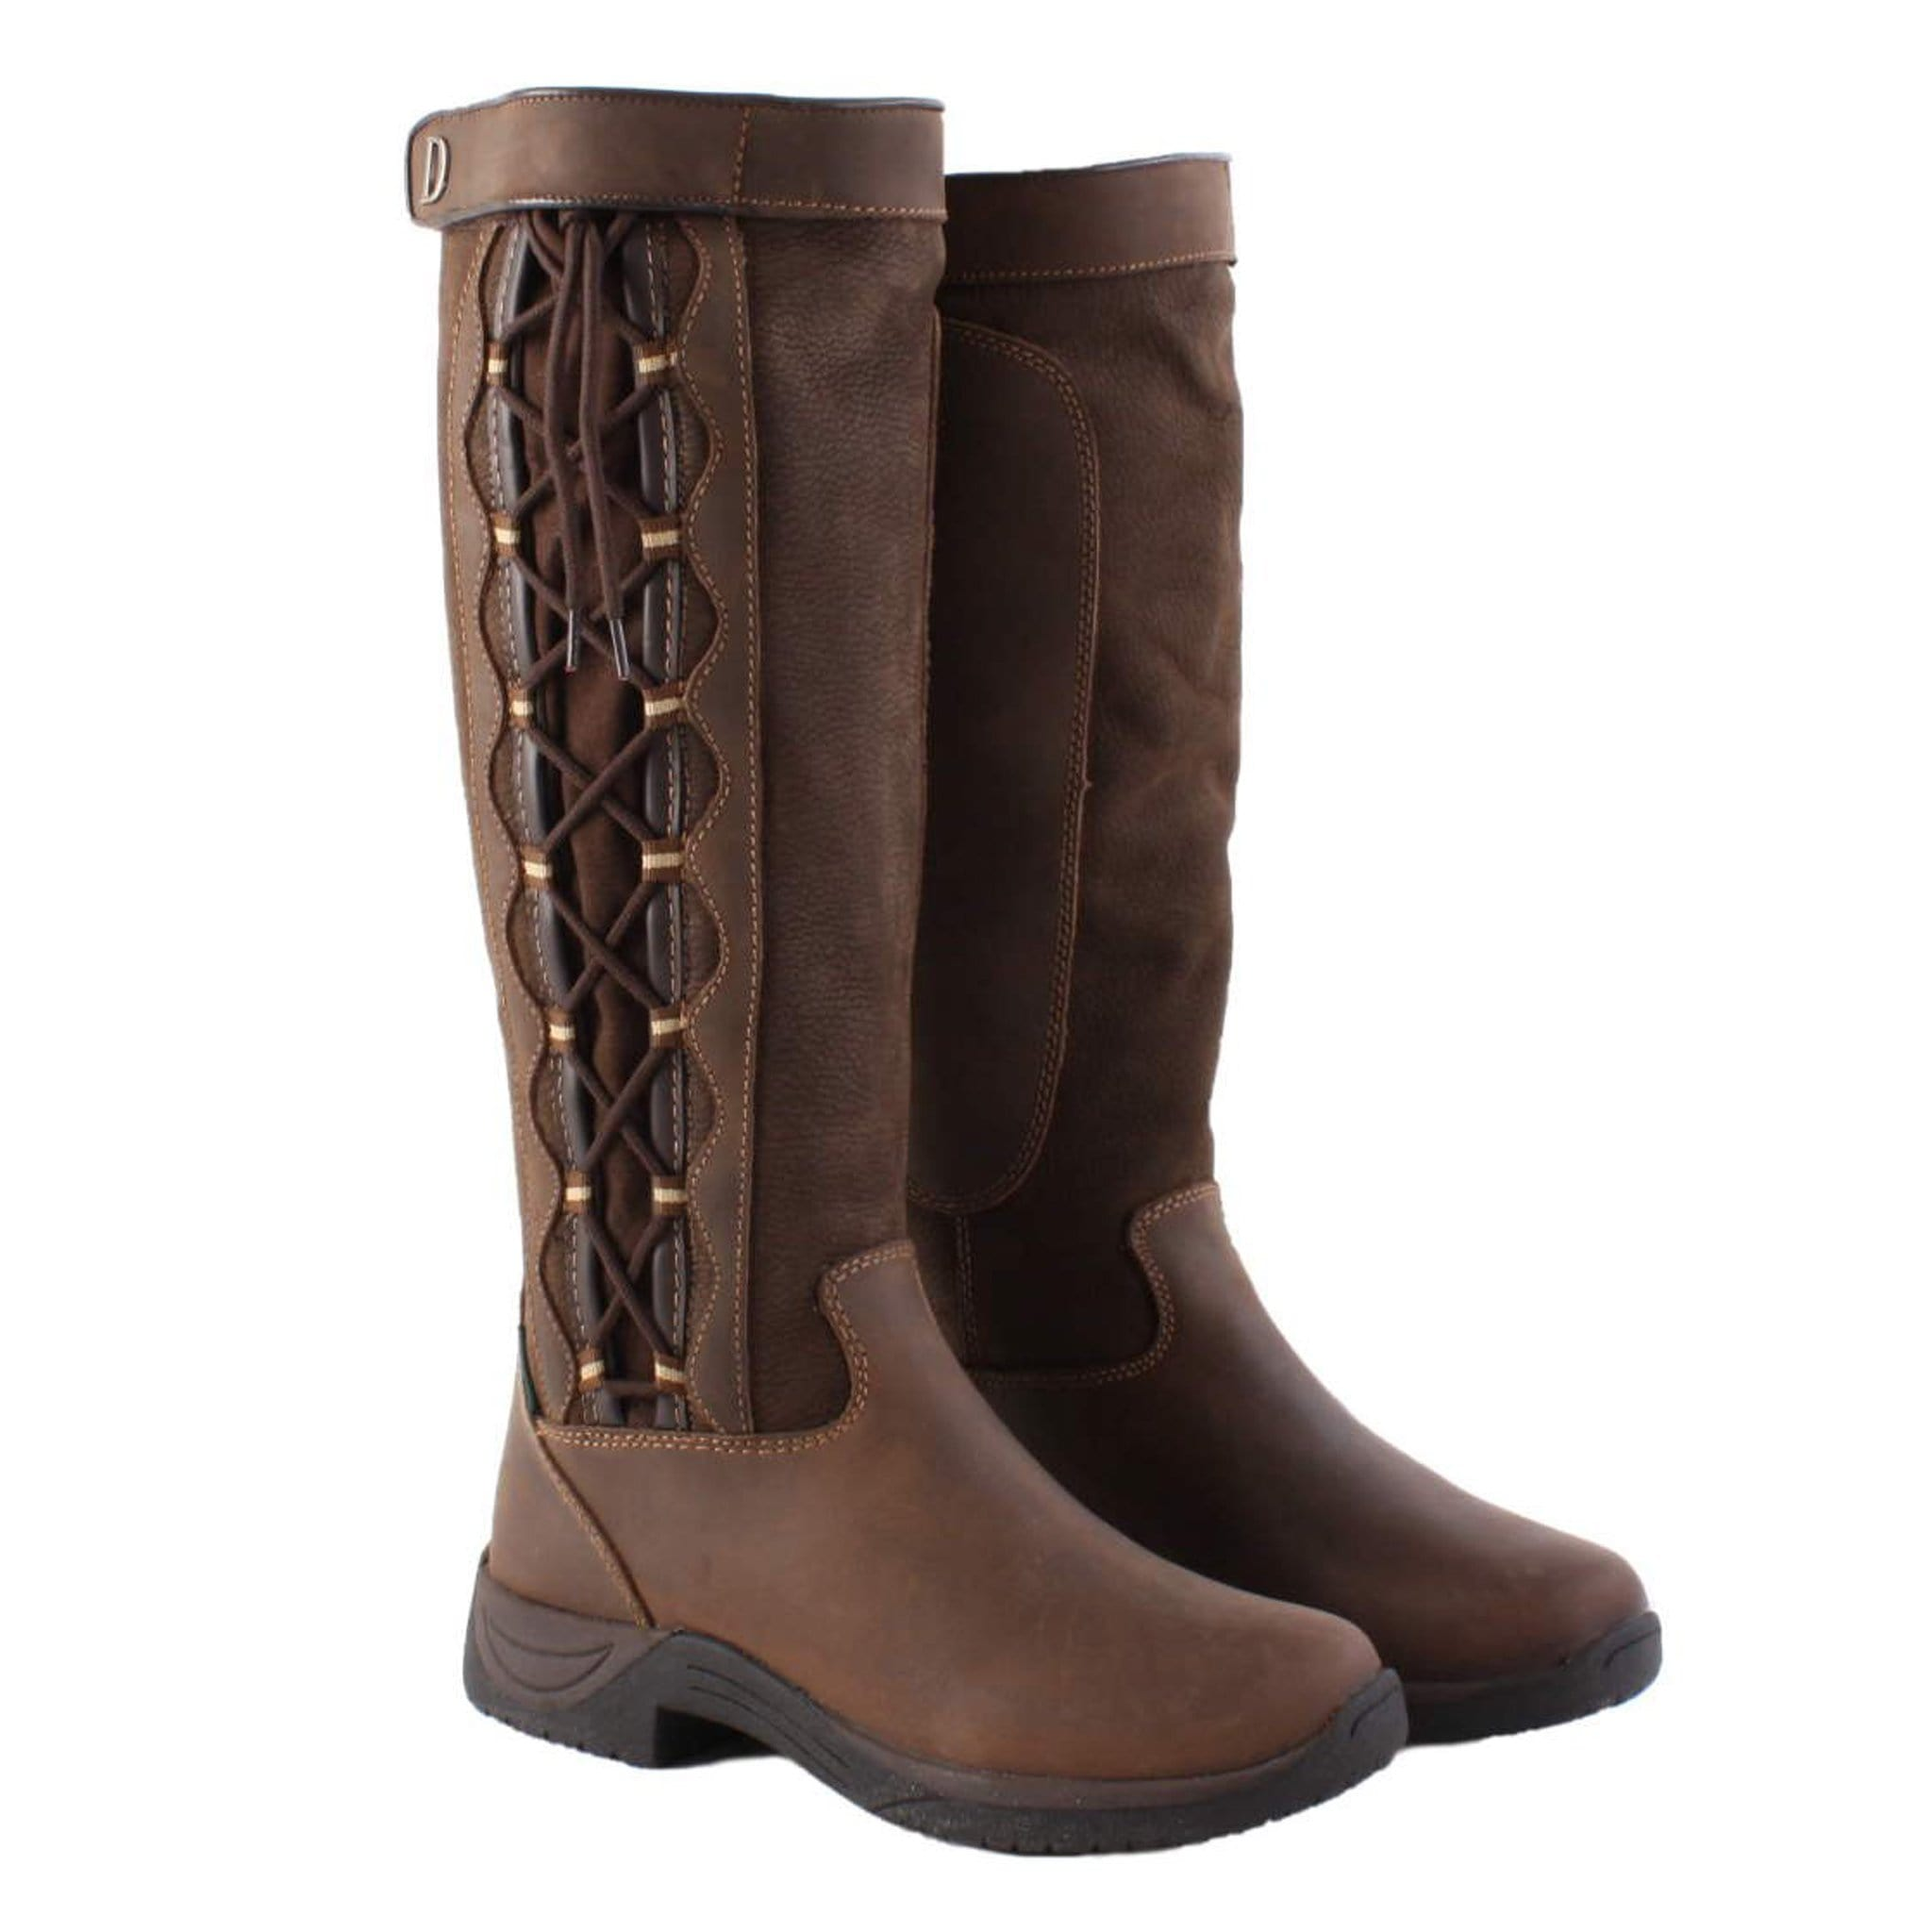 Dublin Pinnacle Boots Chocolate Brown 213870 Right Side Pair